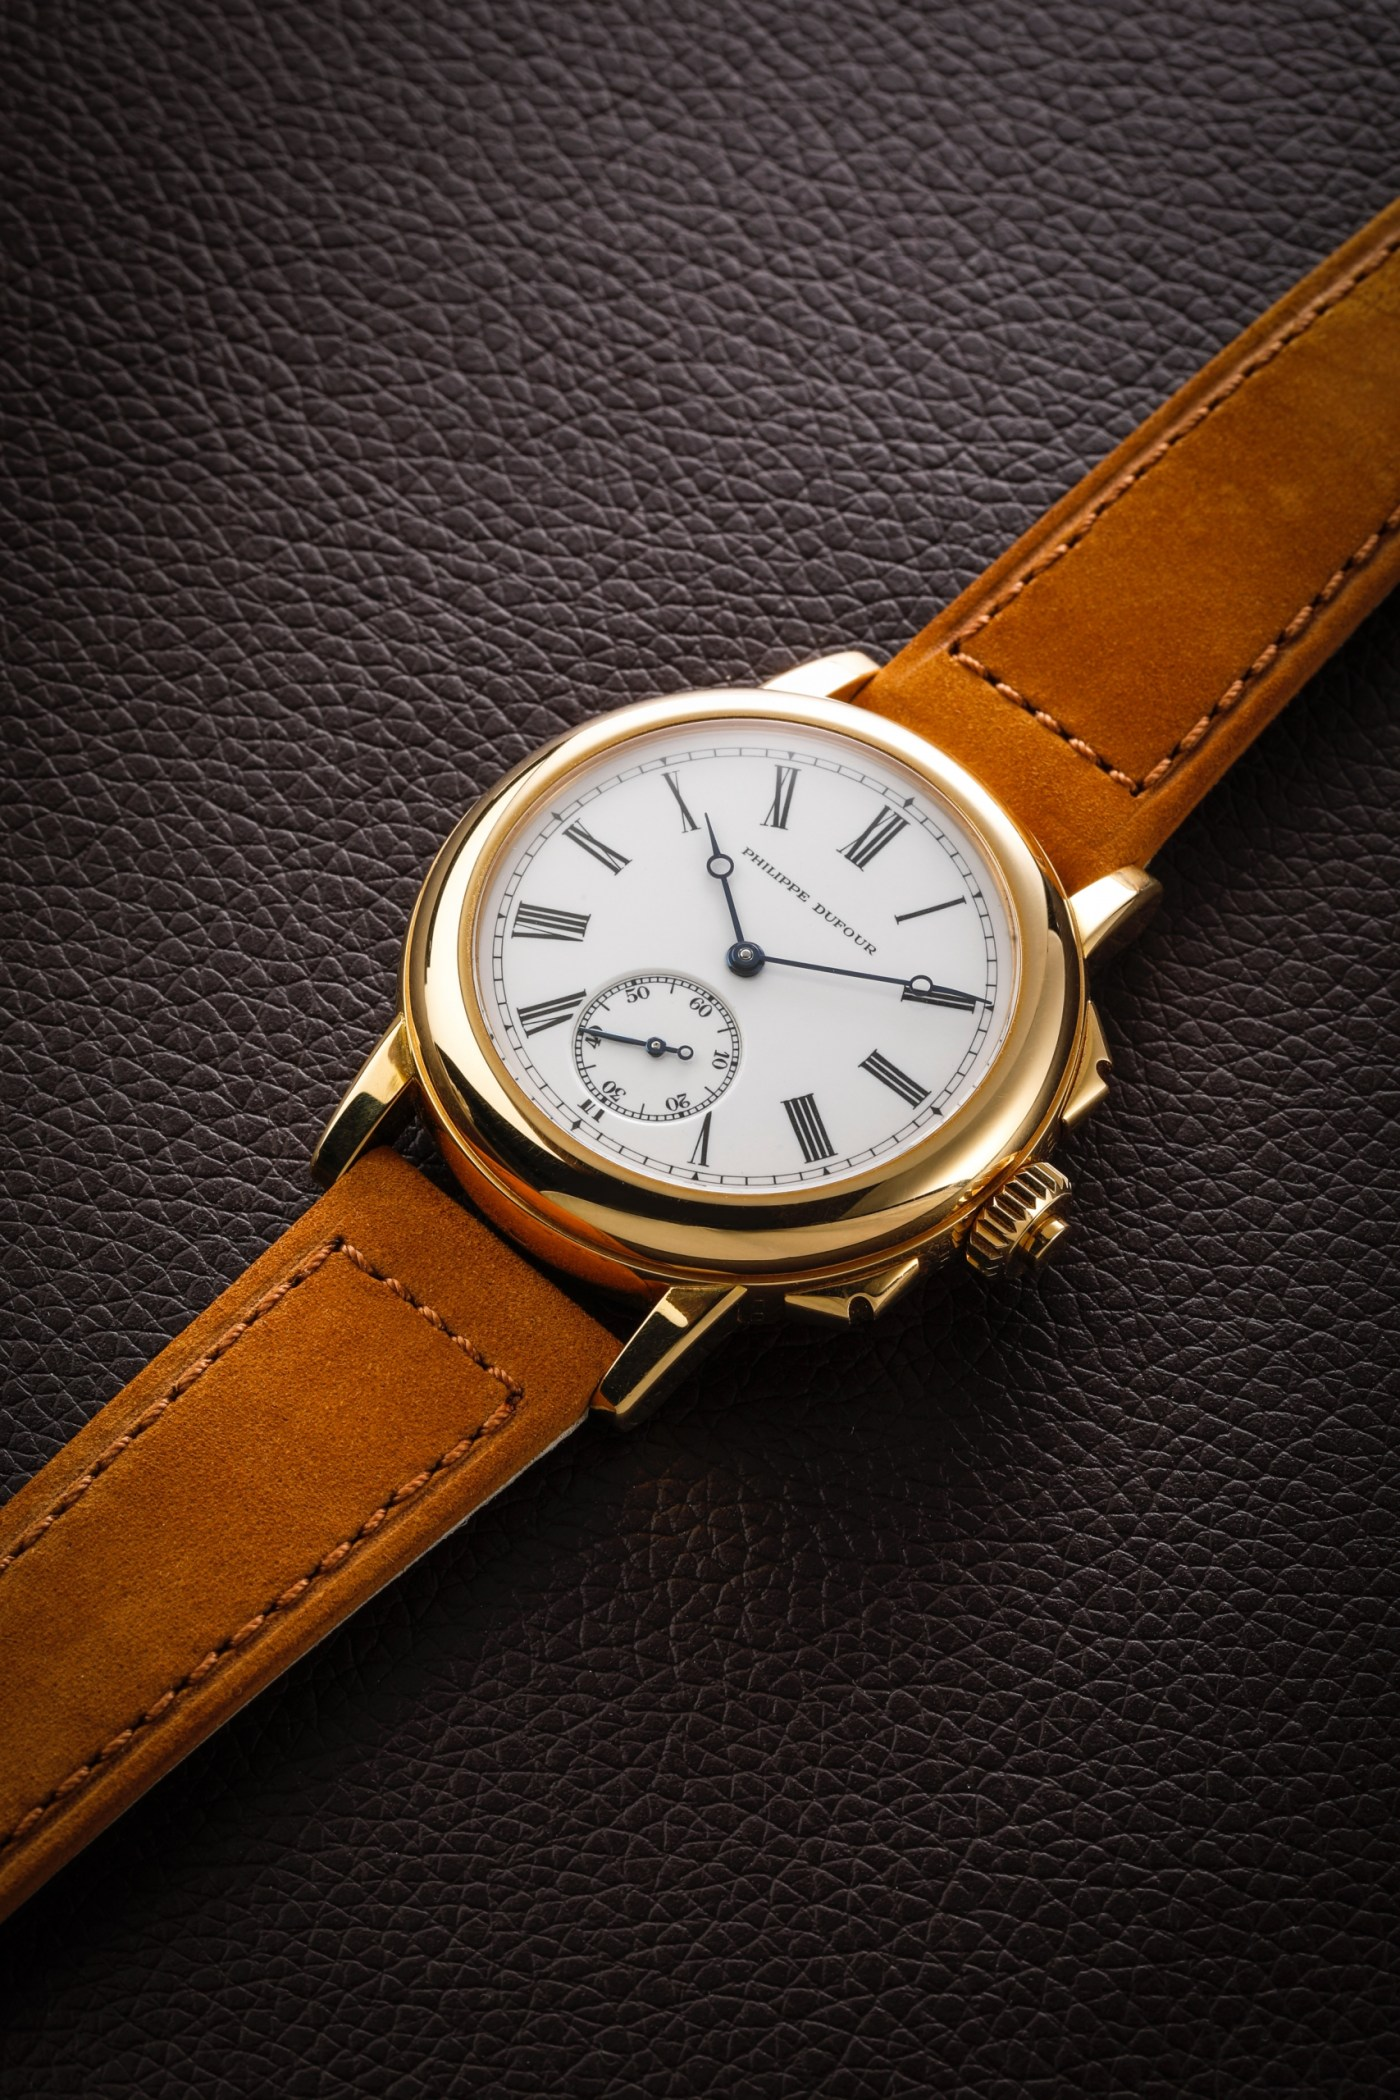 Philippe Dufour Grande and Petite Sonnerie wristwatch number 1